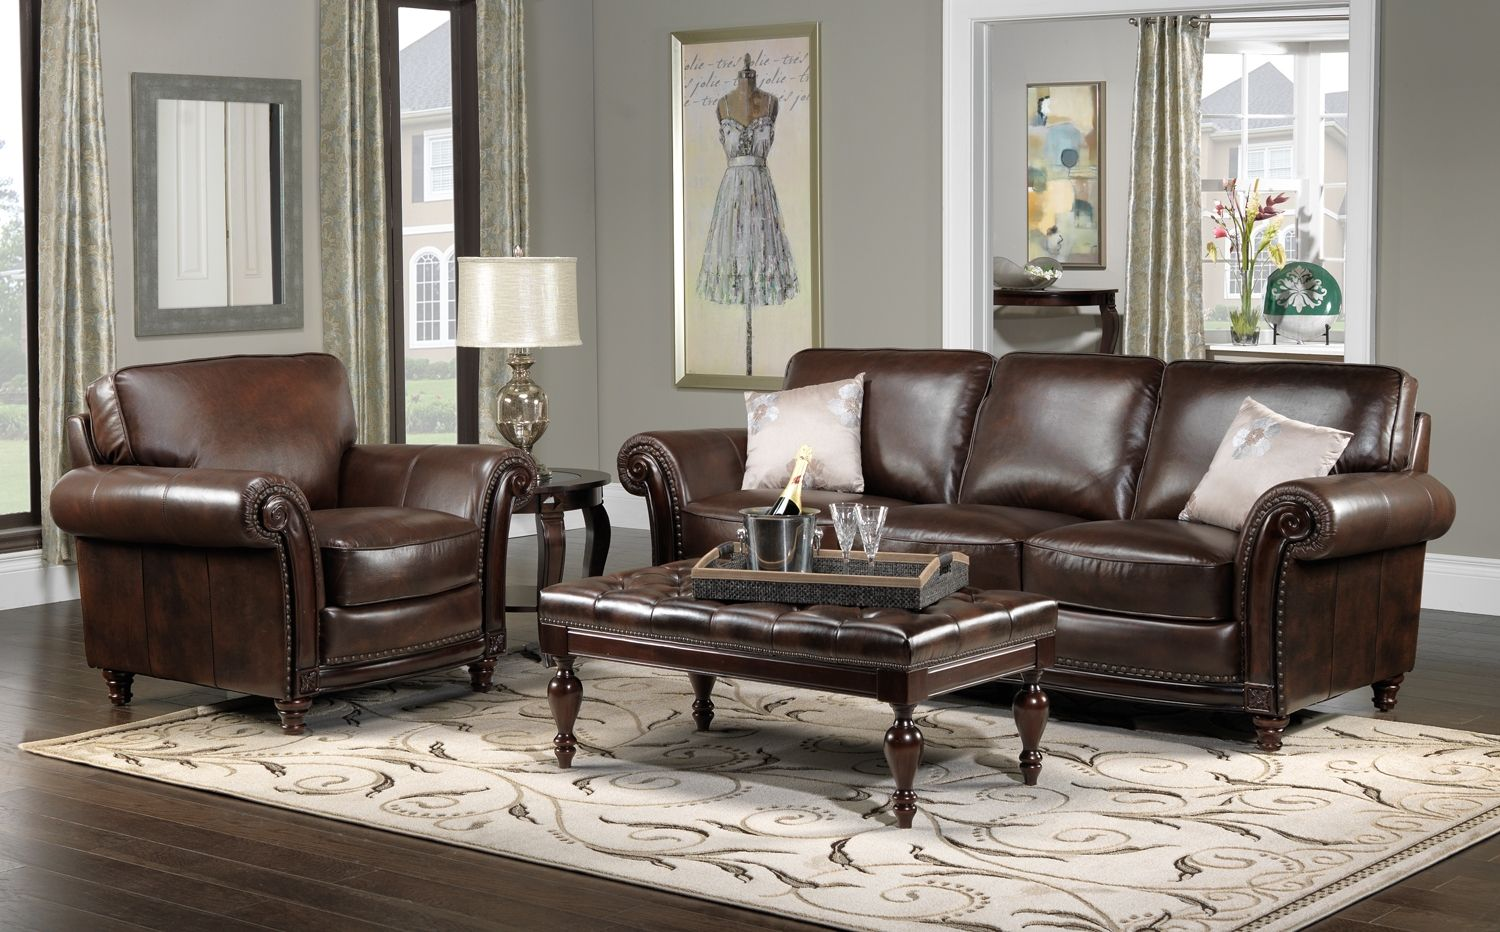 Dream house decor ideas for brown leather furniture gngkxz for Brown living room furniture ideas